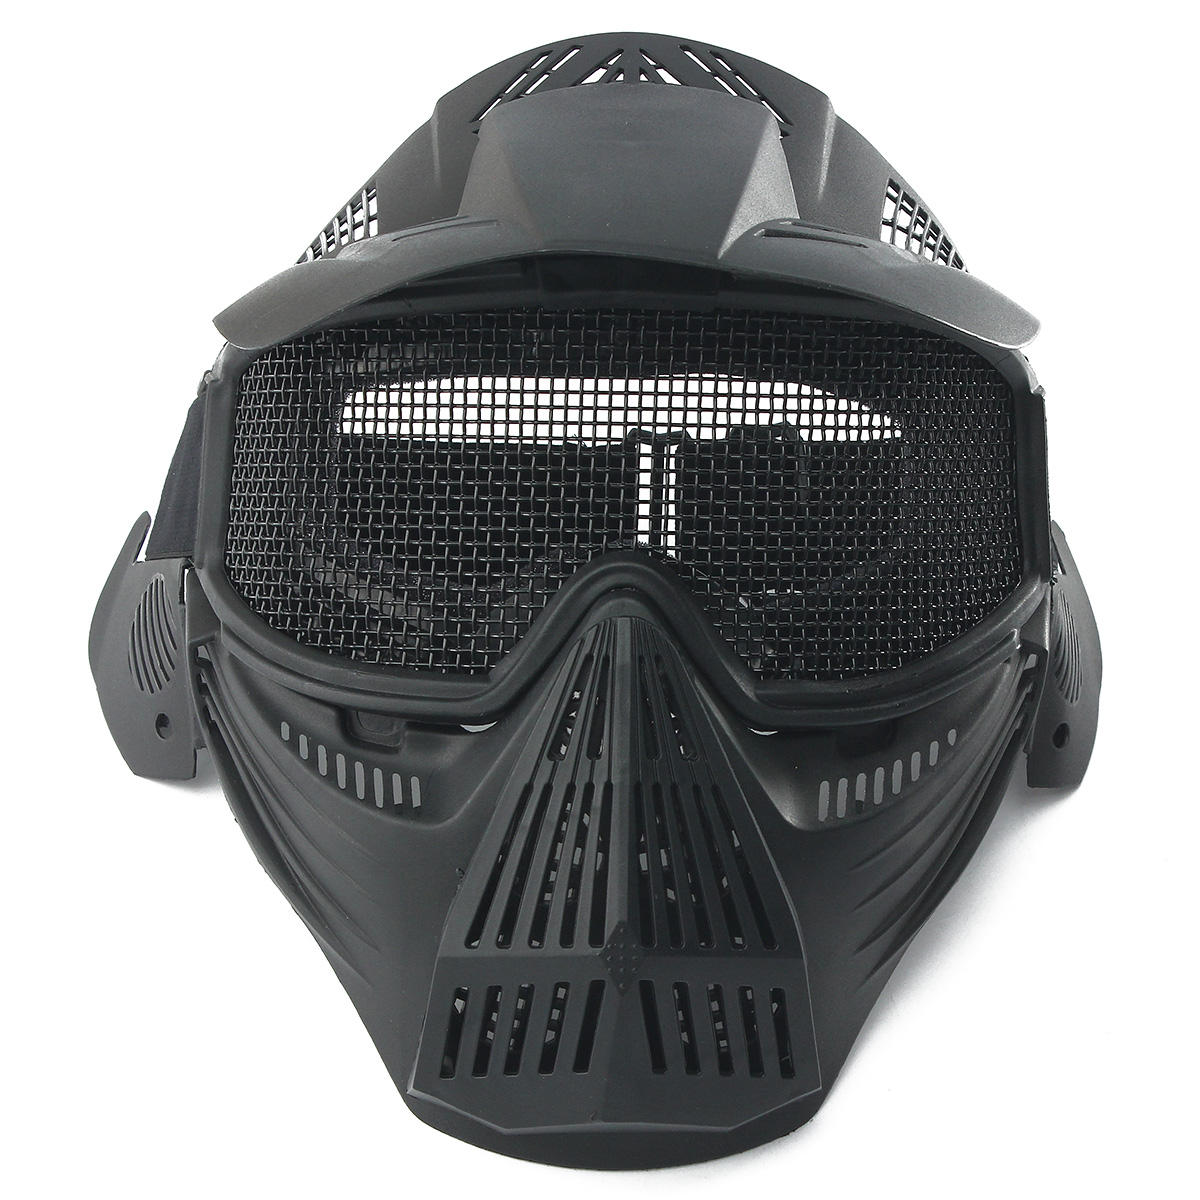 Tactical Airsoft Pro Full Face Mask with Safety Metal Goggles Protection, Banggood  - buy with discount